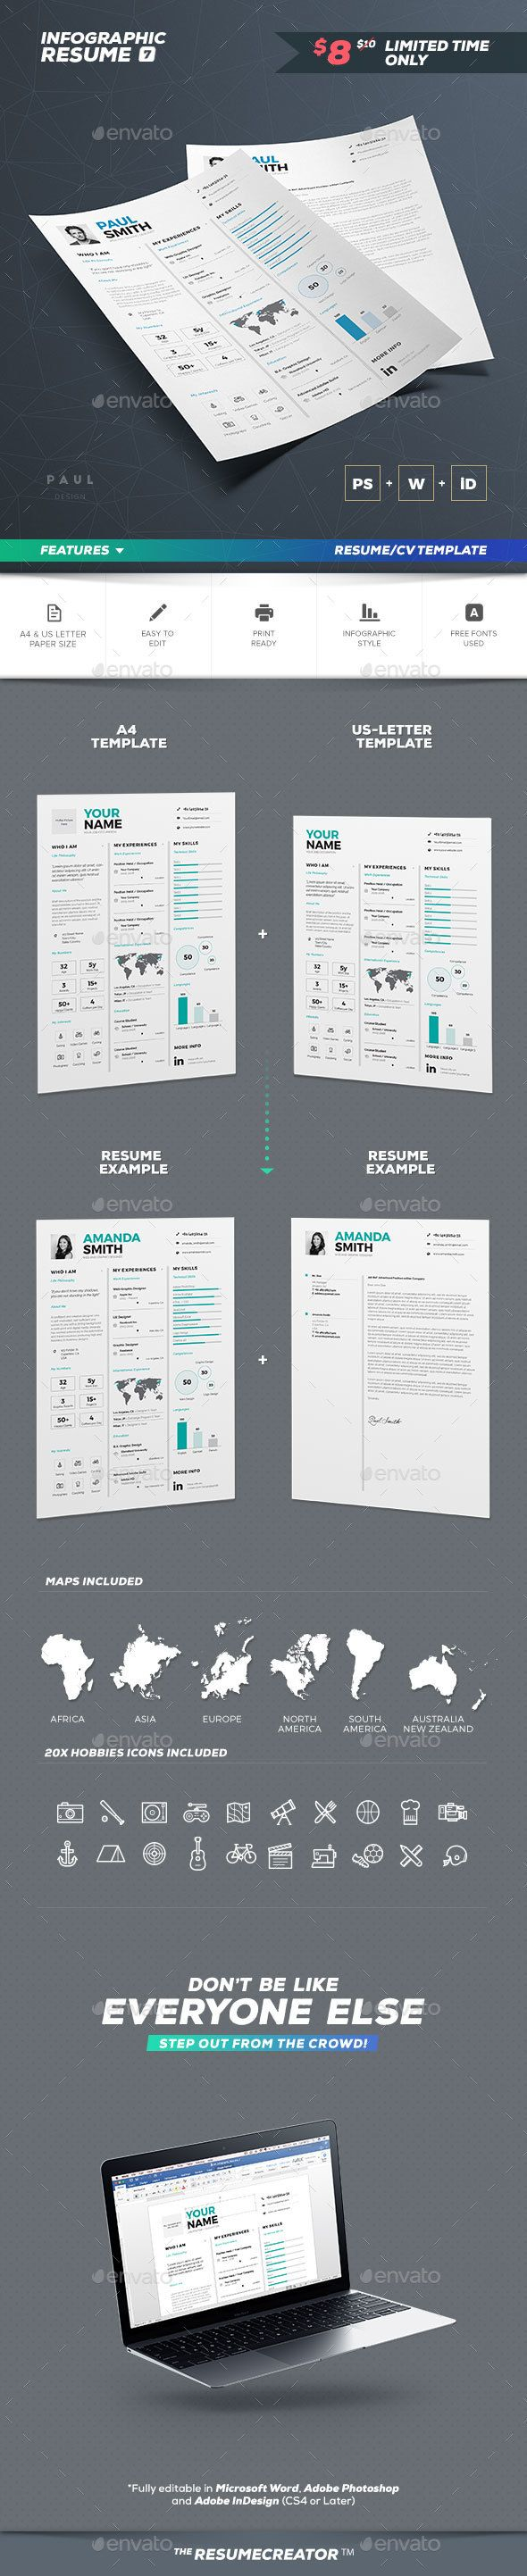 Infographic Resume/Cv Volume 7